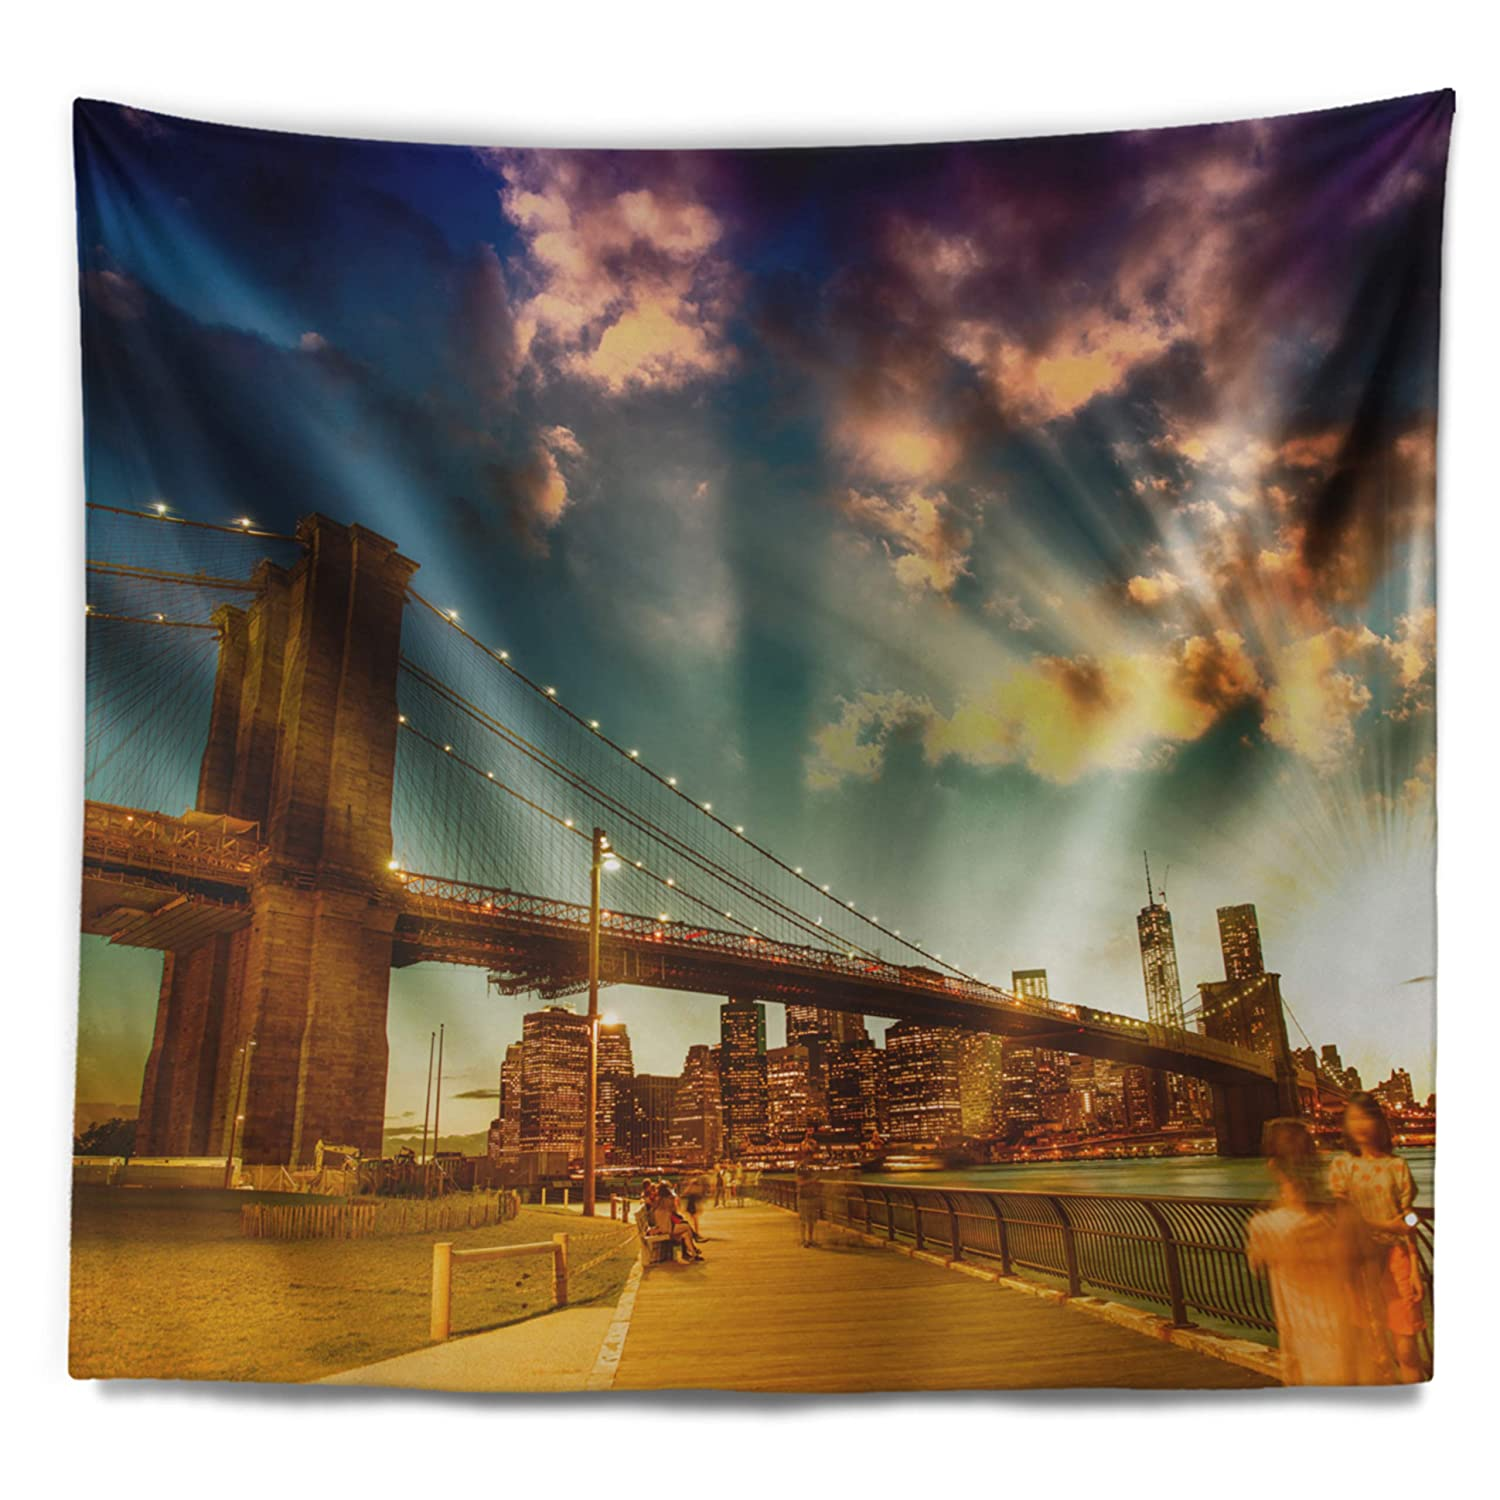 80 x 68 Designart TAP14298-80-68  Relaxing in Brooklyn Bridge Park Cityscape Blanket D/écor Art for Home and Office Wall Tapestry x Large